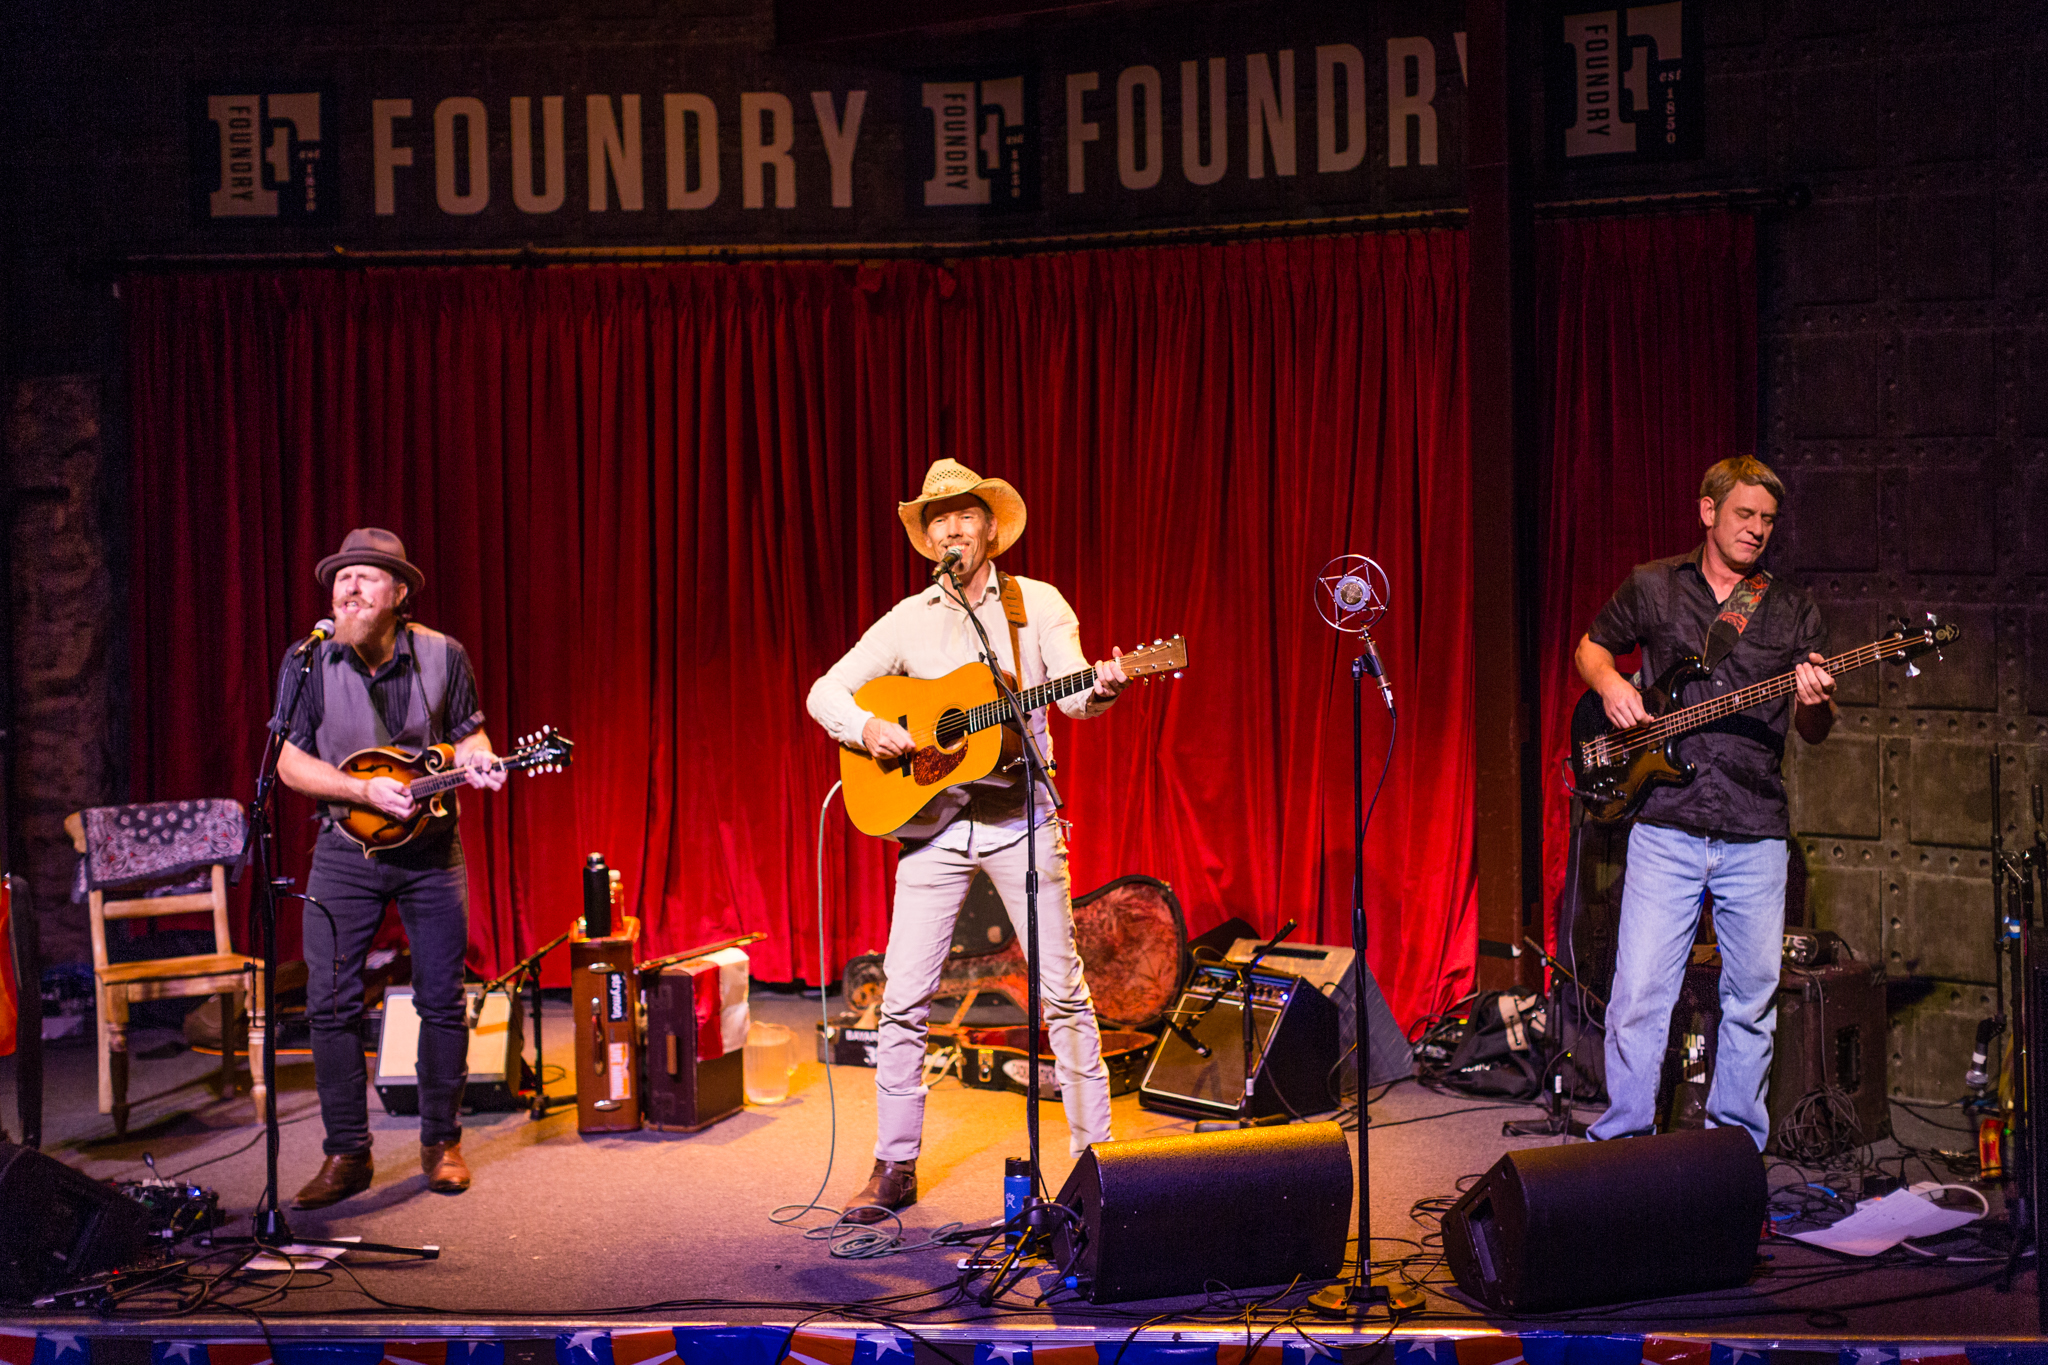 Johnny Waken, Jonathan Byrd, and Neal Fountain